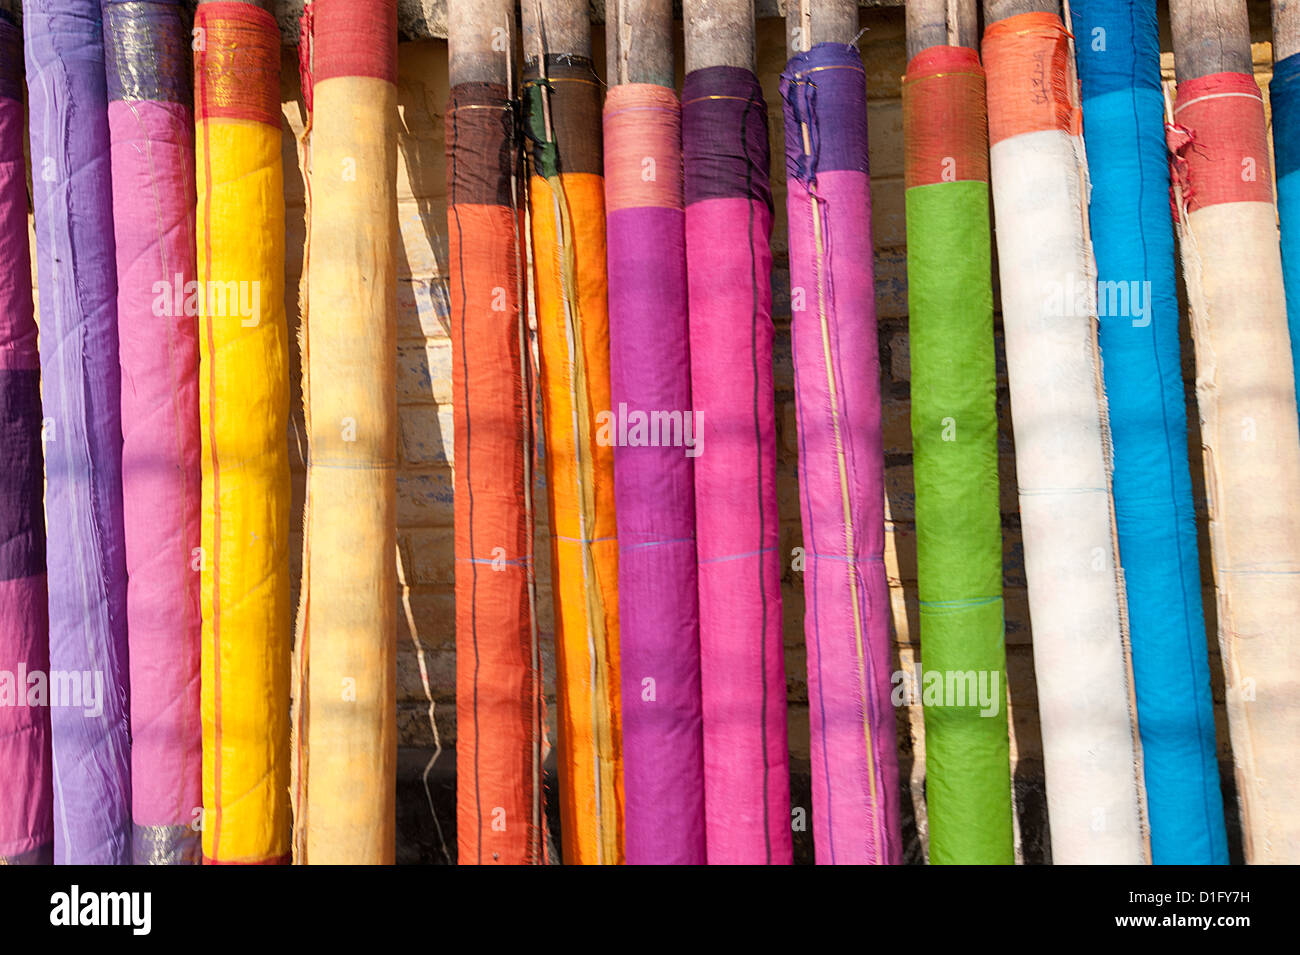 Sari lengths of brightly coloured cotton, hand woven on village looms, Kalna, West Bengal, India, Asia - Stock Image